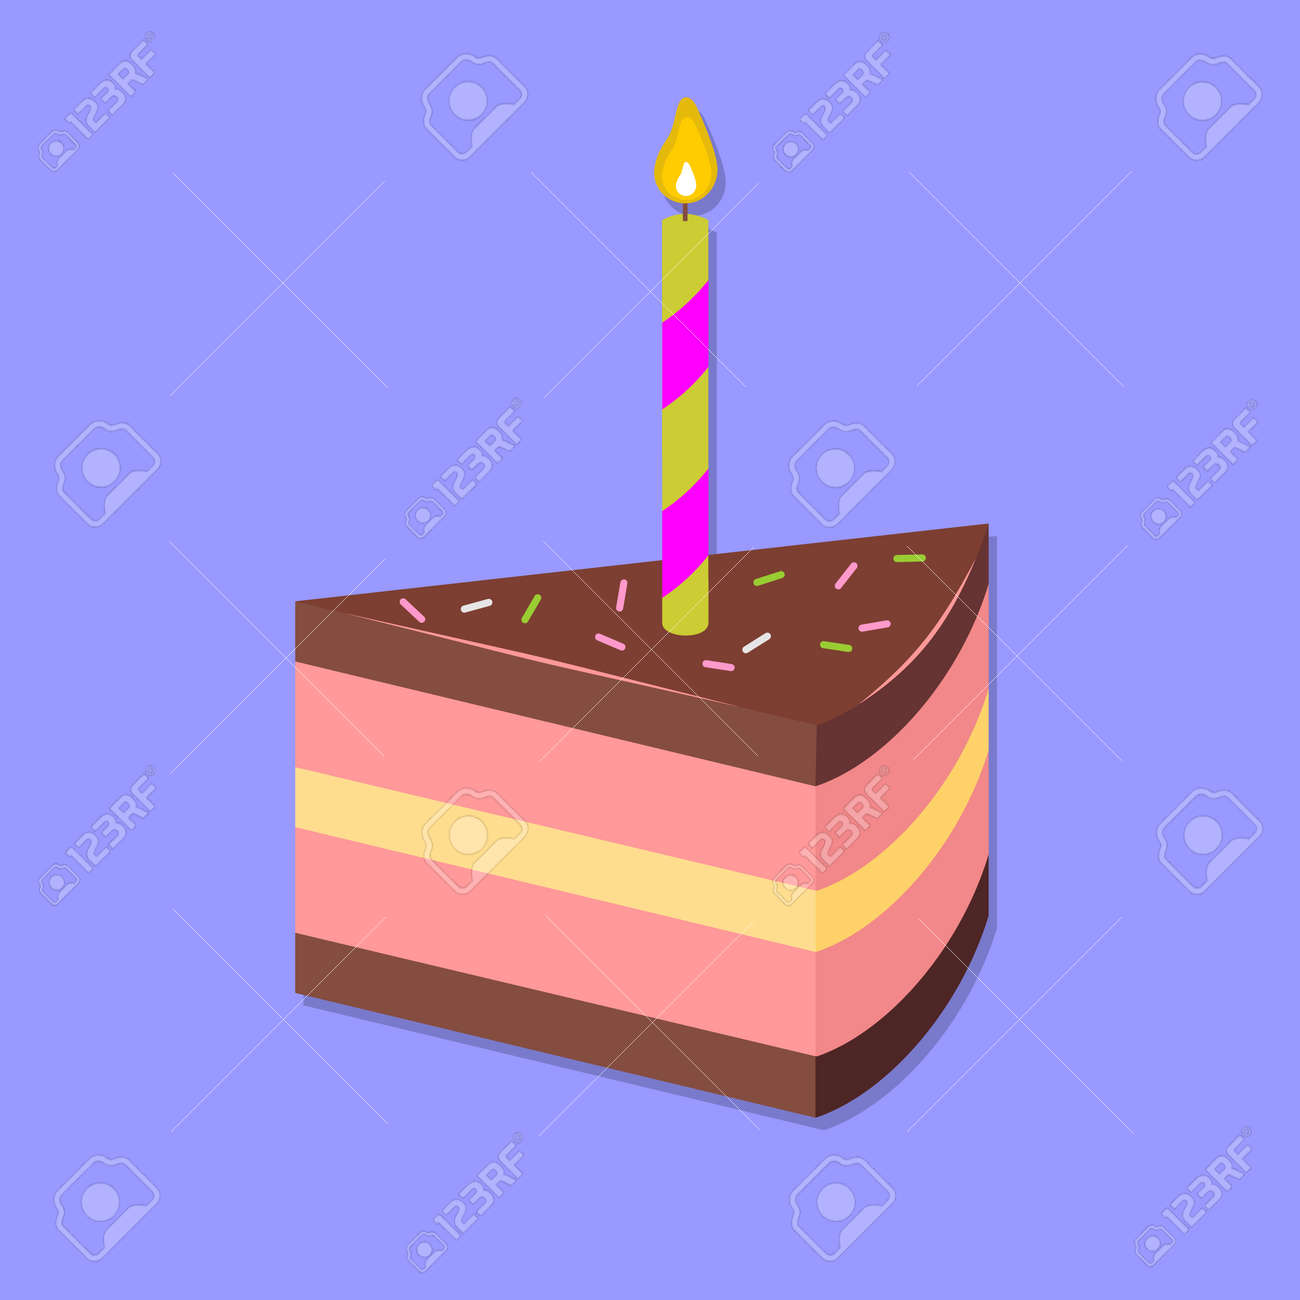 Slice of cake isolated. Flat style vector . - 170425528